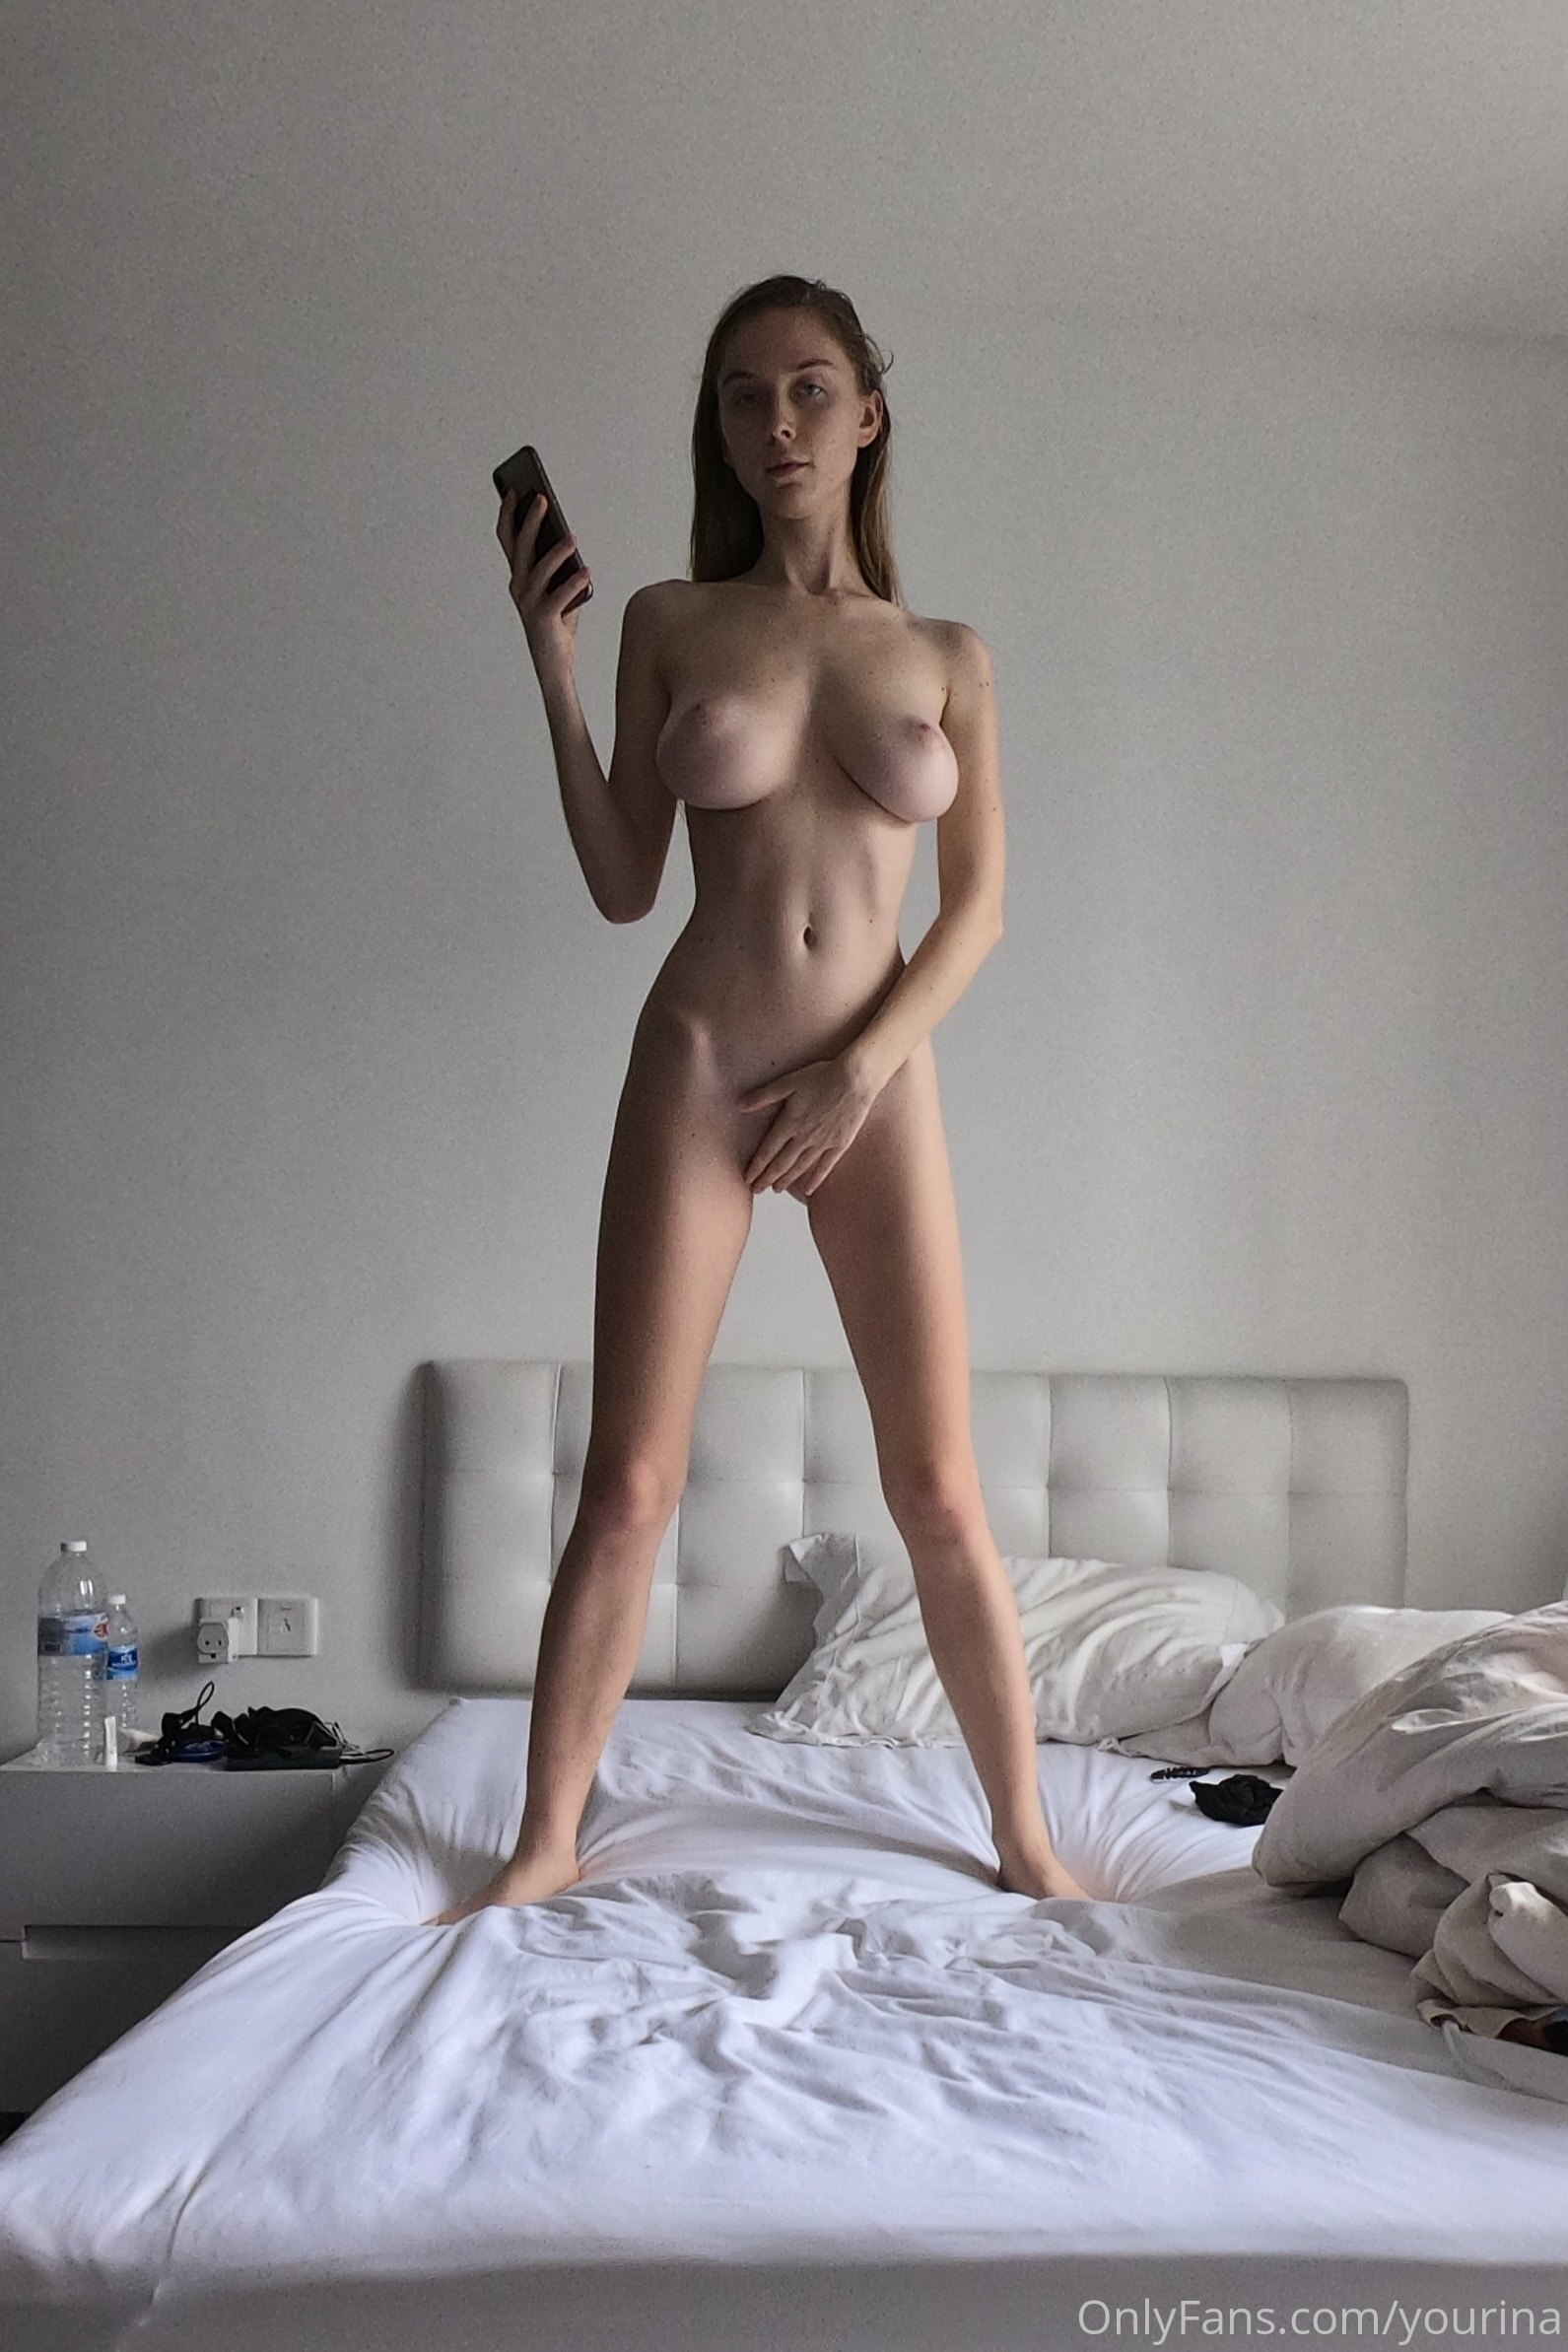 Yourina Onlyfans 0031